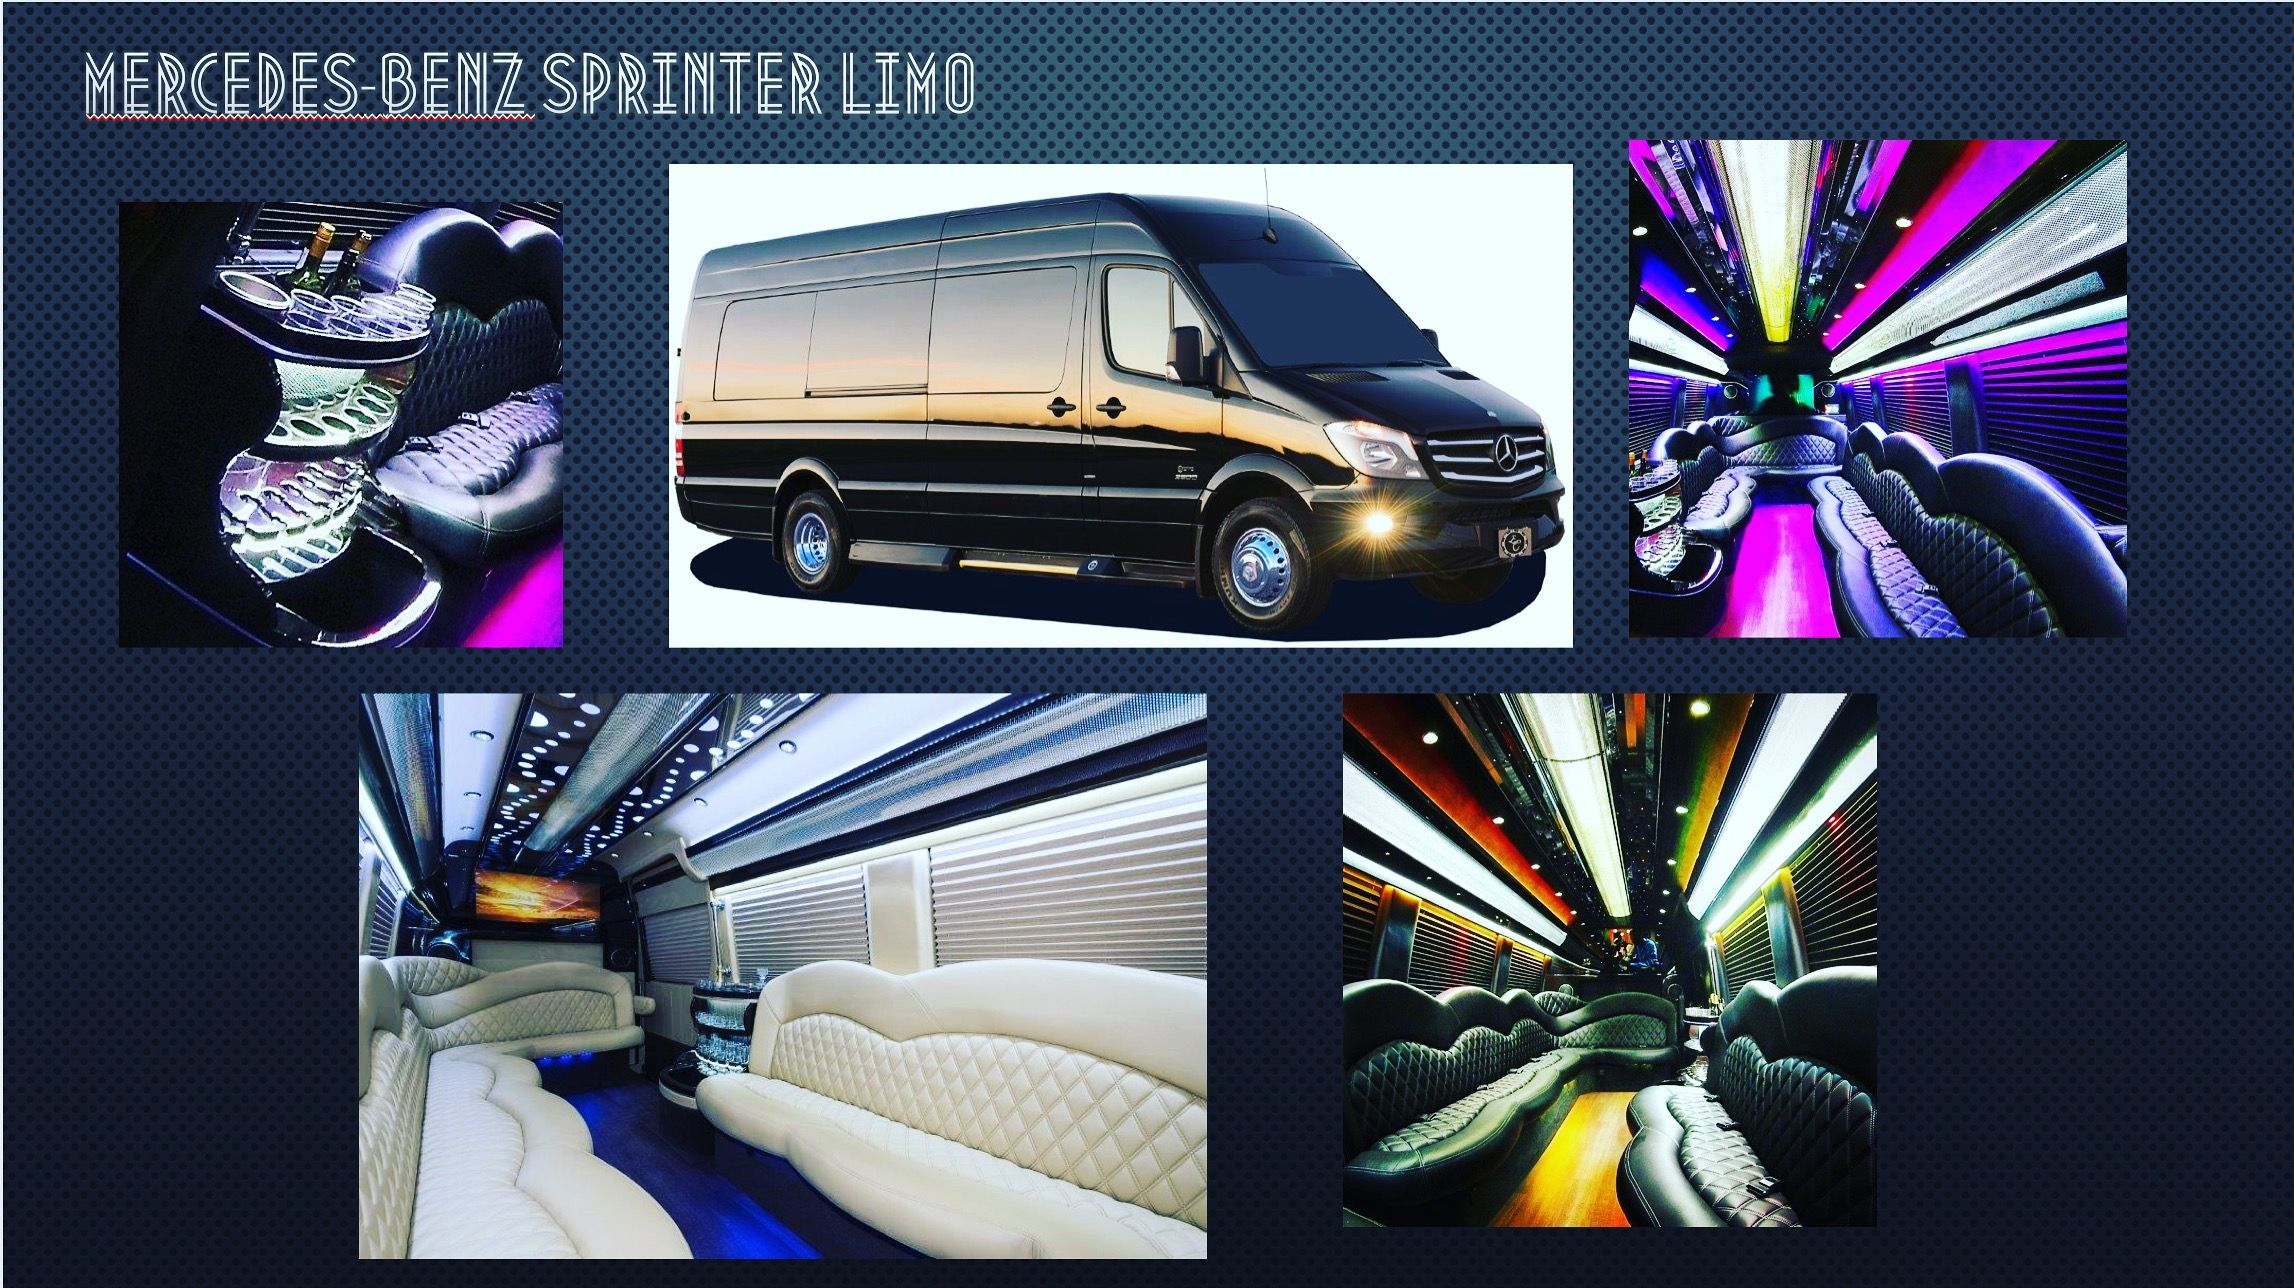 2a516d6c7a Mercedes-Benz Sprinter Limo rental is available in Boston area.  Comfortable